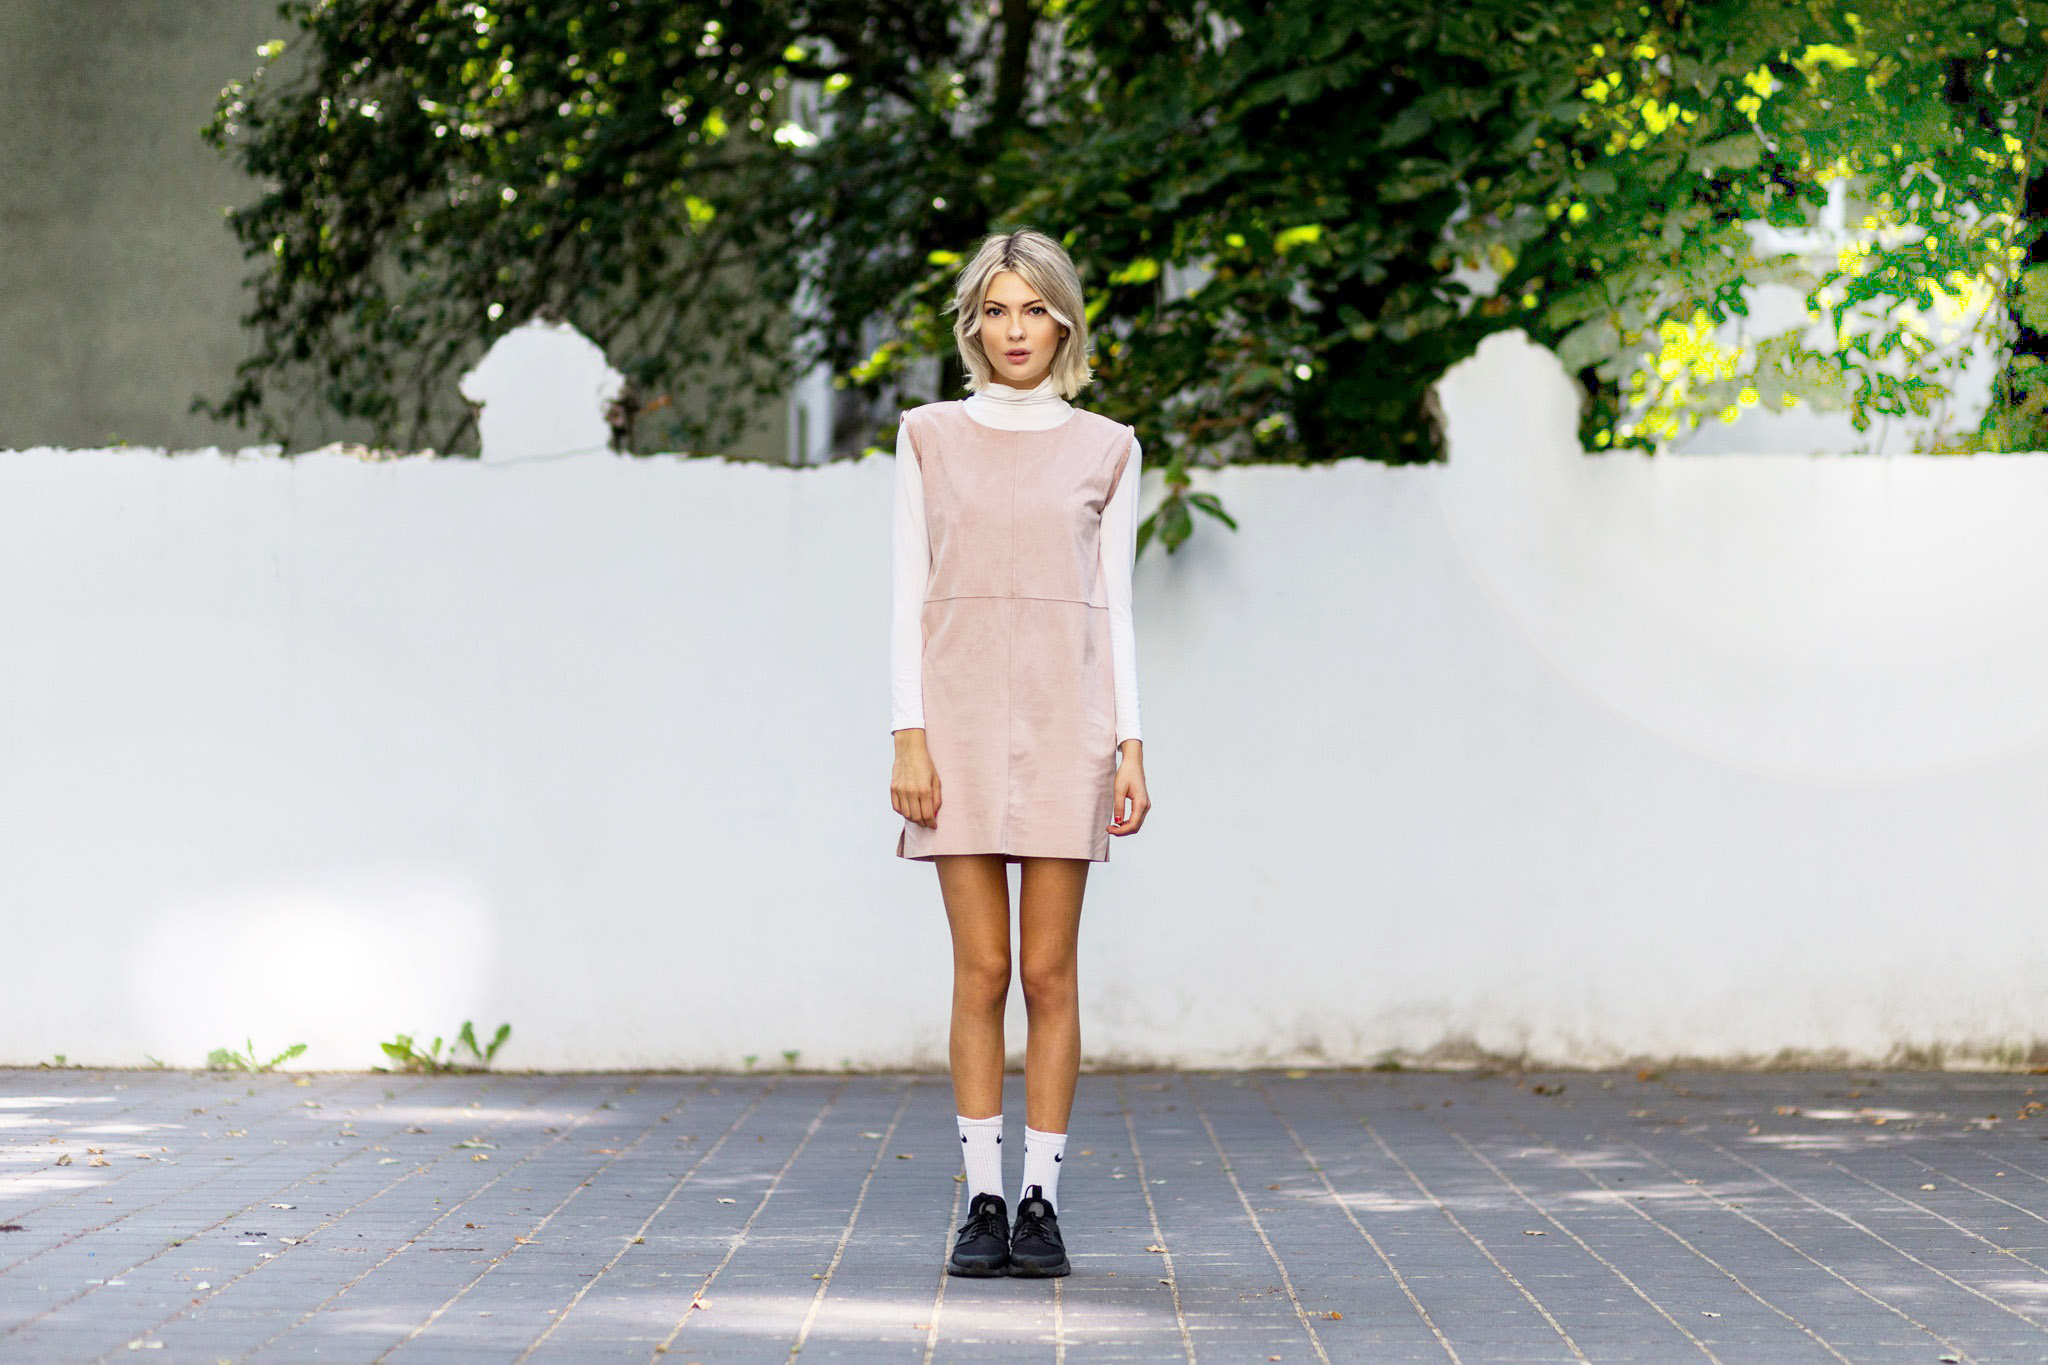 Ebba Zingmark rocks a girly twist on an androgynous look. We love the pastel pale pink summer dress, which provides a contrast to the sporty feel of the outfit brought out by the black sneakers. Dress: Zalando, Top: Monki, Shoes: Sarenza